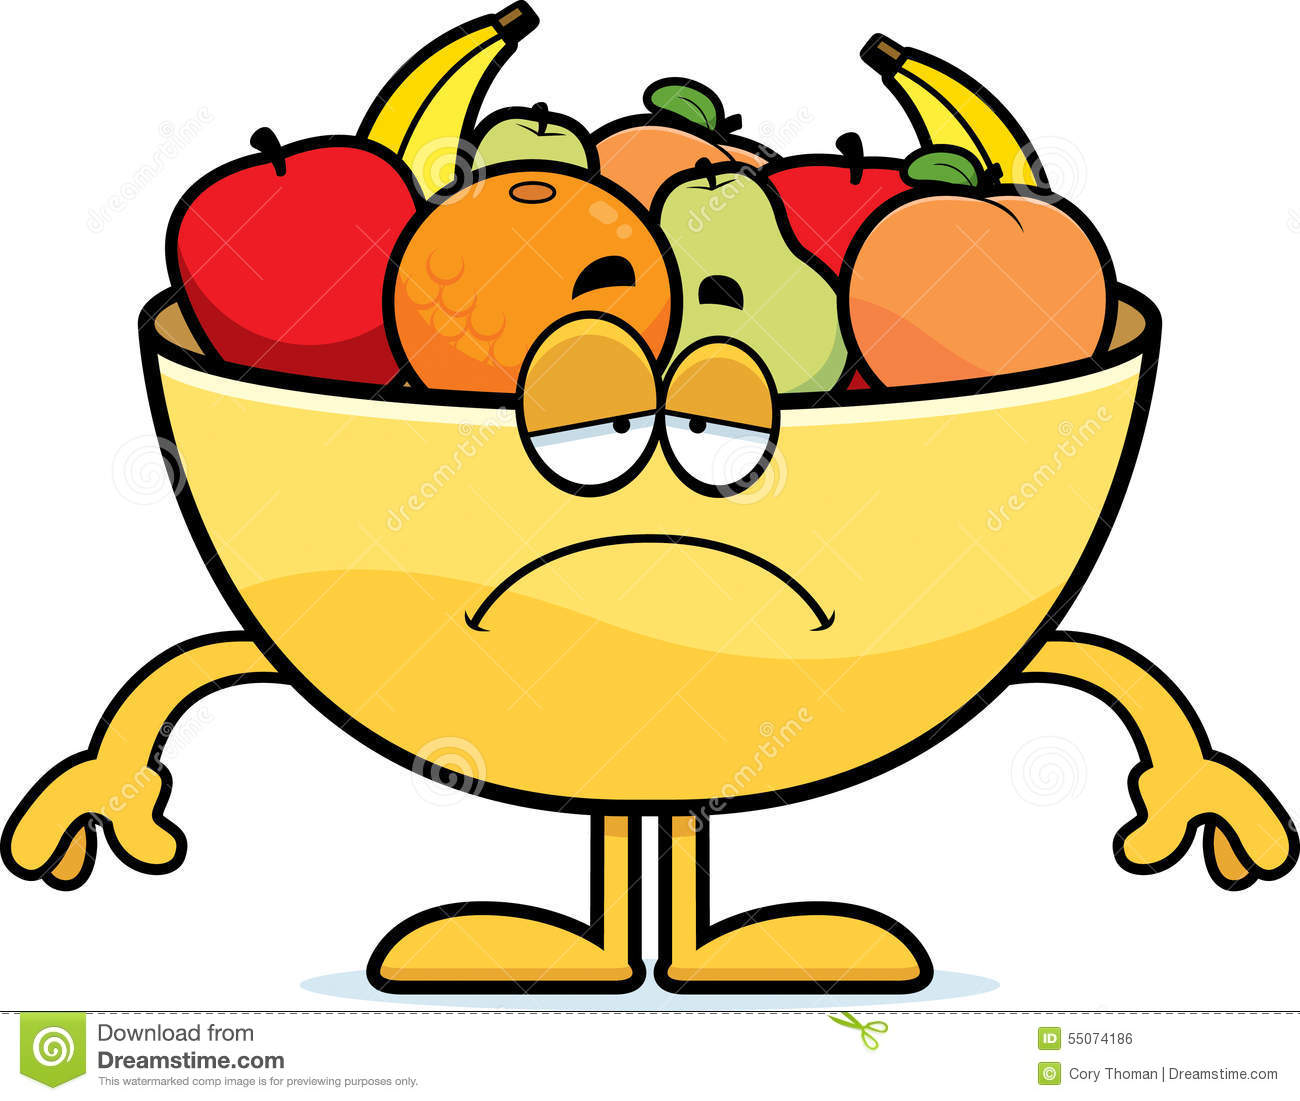 Sad Cartoon Bowl Of Fruit Stock Vector - Image: 55074186